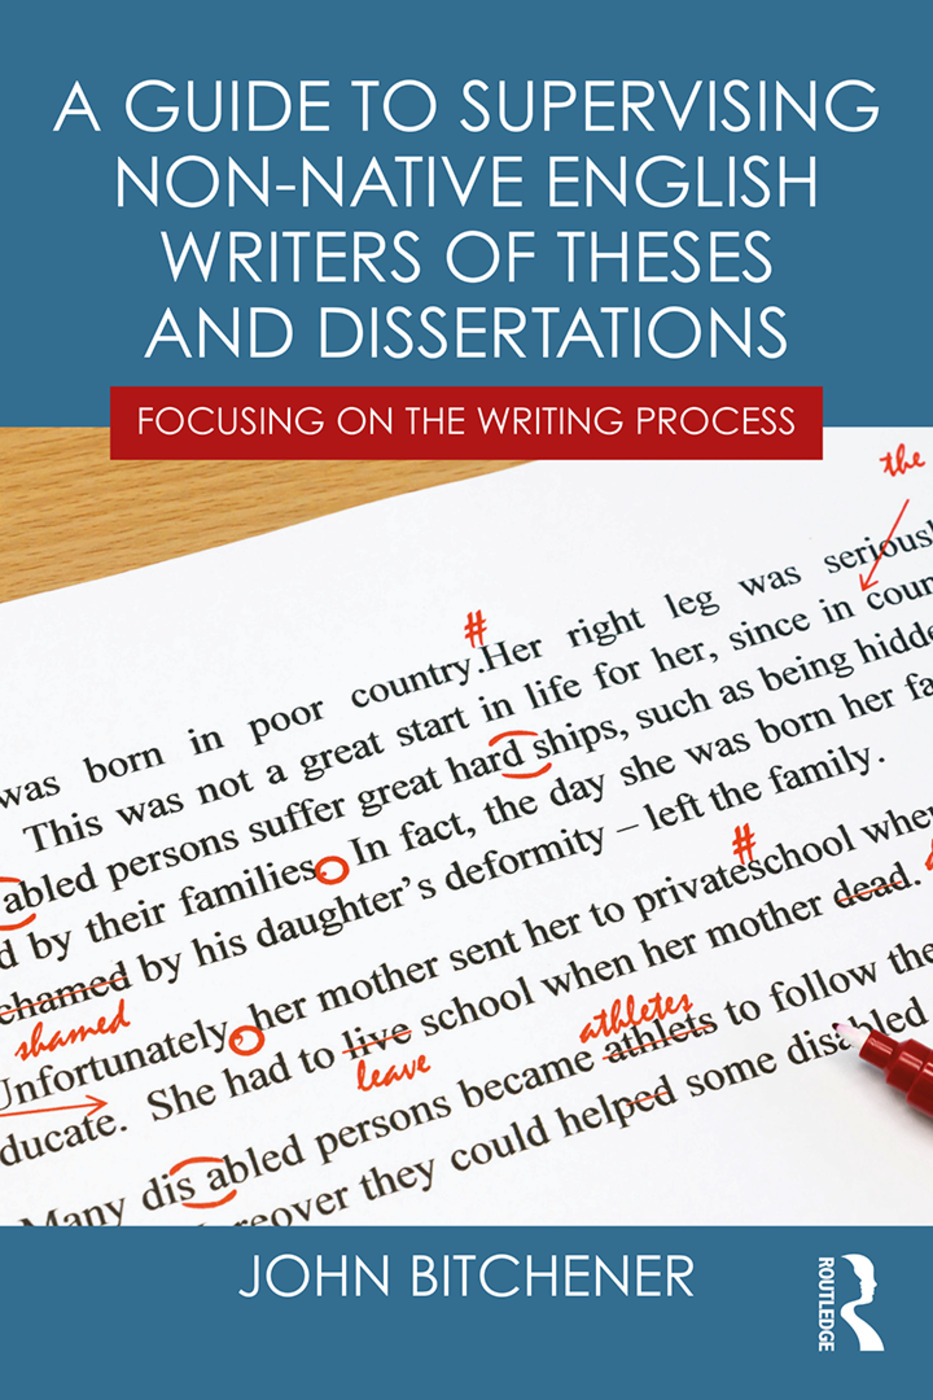 A Guide to Supervising Non-native English Writers of Theses and Dissertations: Focusing on the Writing Process book cover